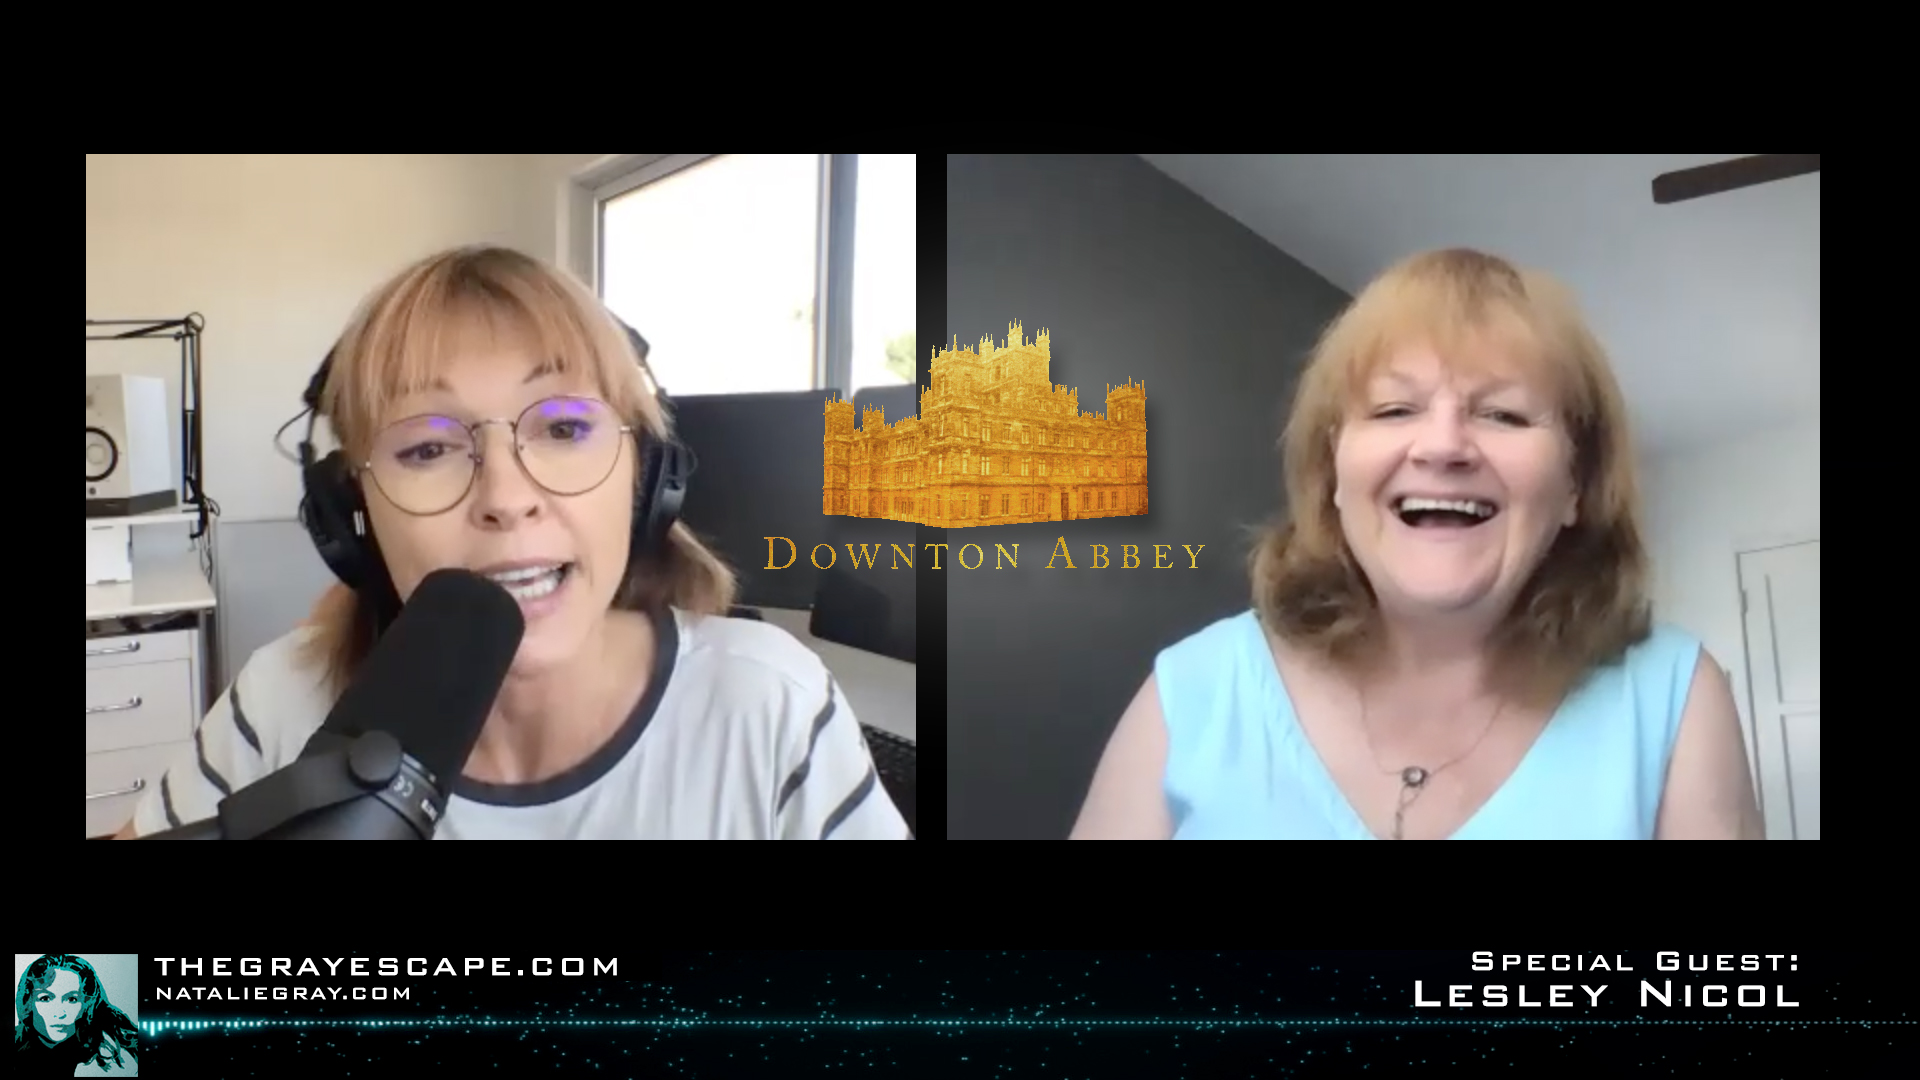 Natalie Gray and Lesley Nicol who plays Mrs Patmore on Downton Abbey